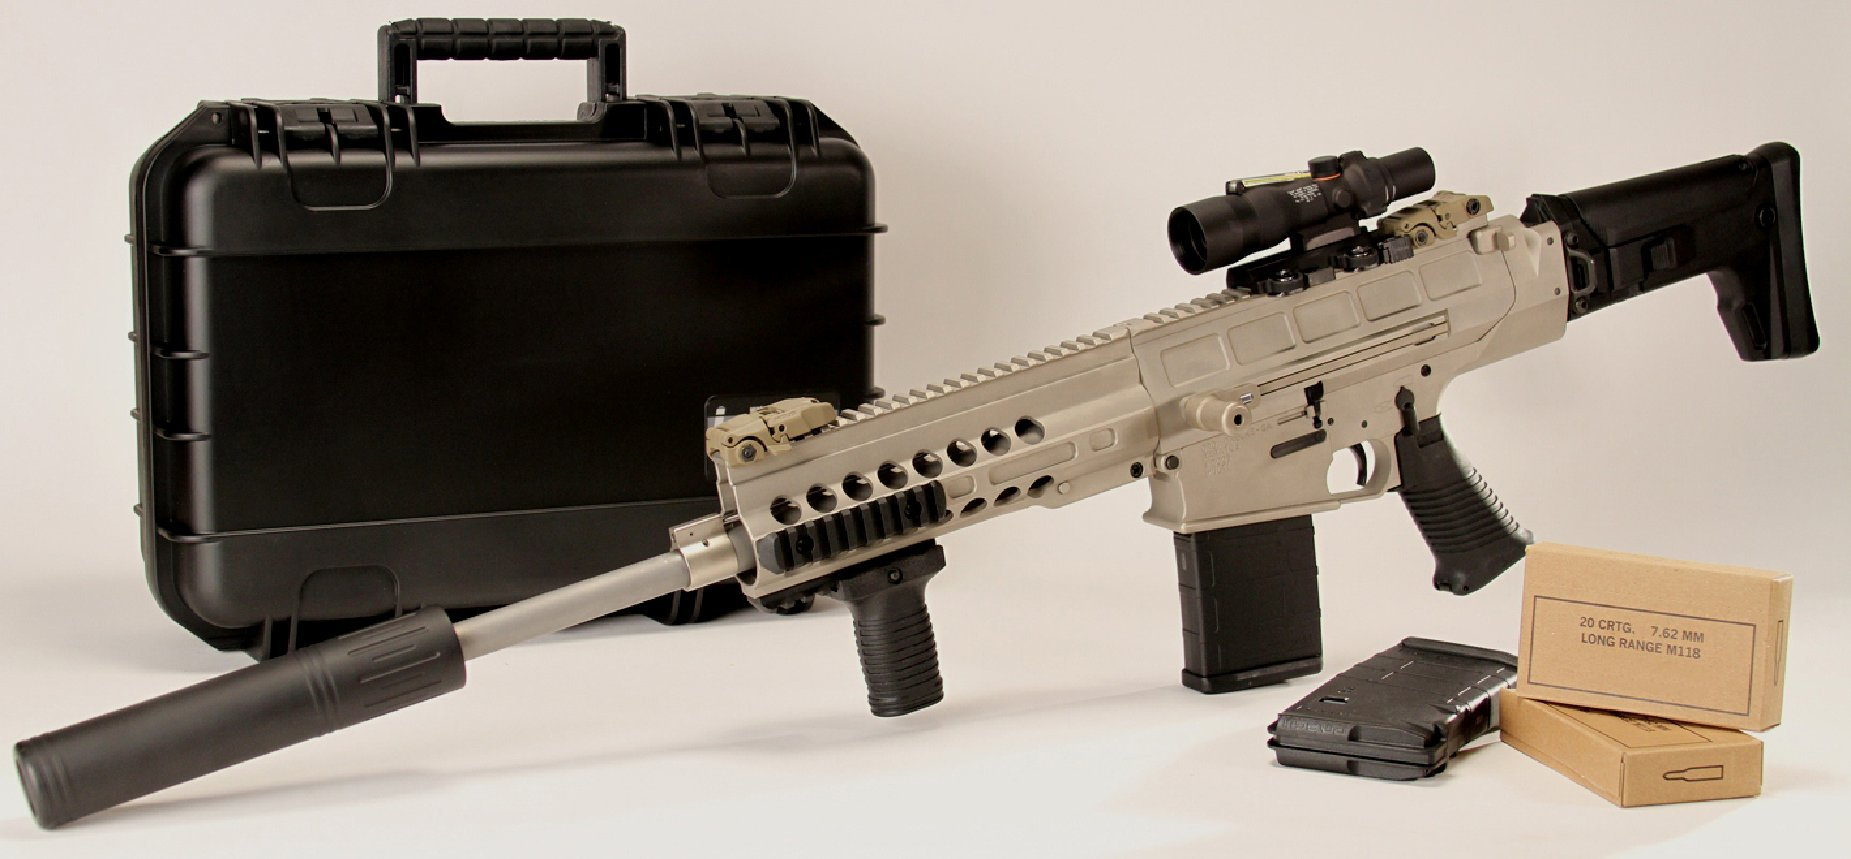 DRD Tactical Paratus Rifle 3 DRD Tactical Paratus Rifle: Revolutionary 7.62mm NATO/.308 Win. Quick Breakdown/Takedown Tactical AR Rifle/Carbine for Clandestine Break Down Semi Automatic Rifle (CSR) and Compact Semi Automatic Sniper System (CSASS) (Video!)